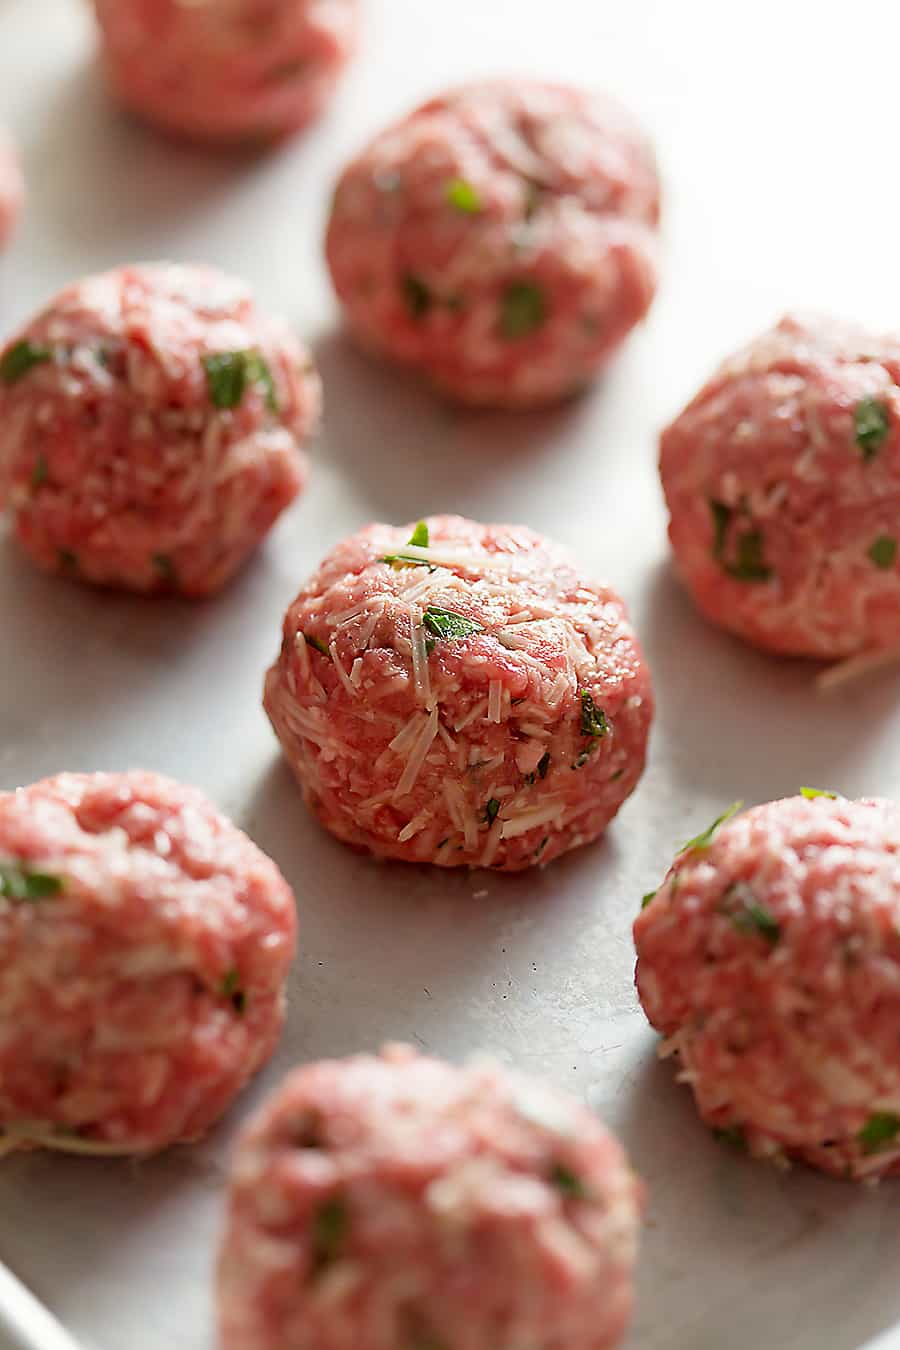 Gluten Free Meatballs with Bacon Tomato Sauce. Serve with lemony kale for the perfect low carb dinner. No noodles here!